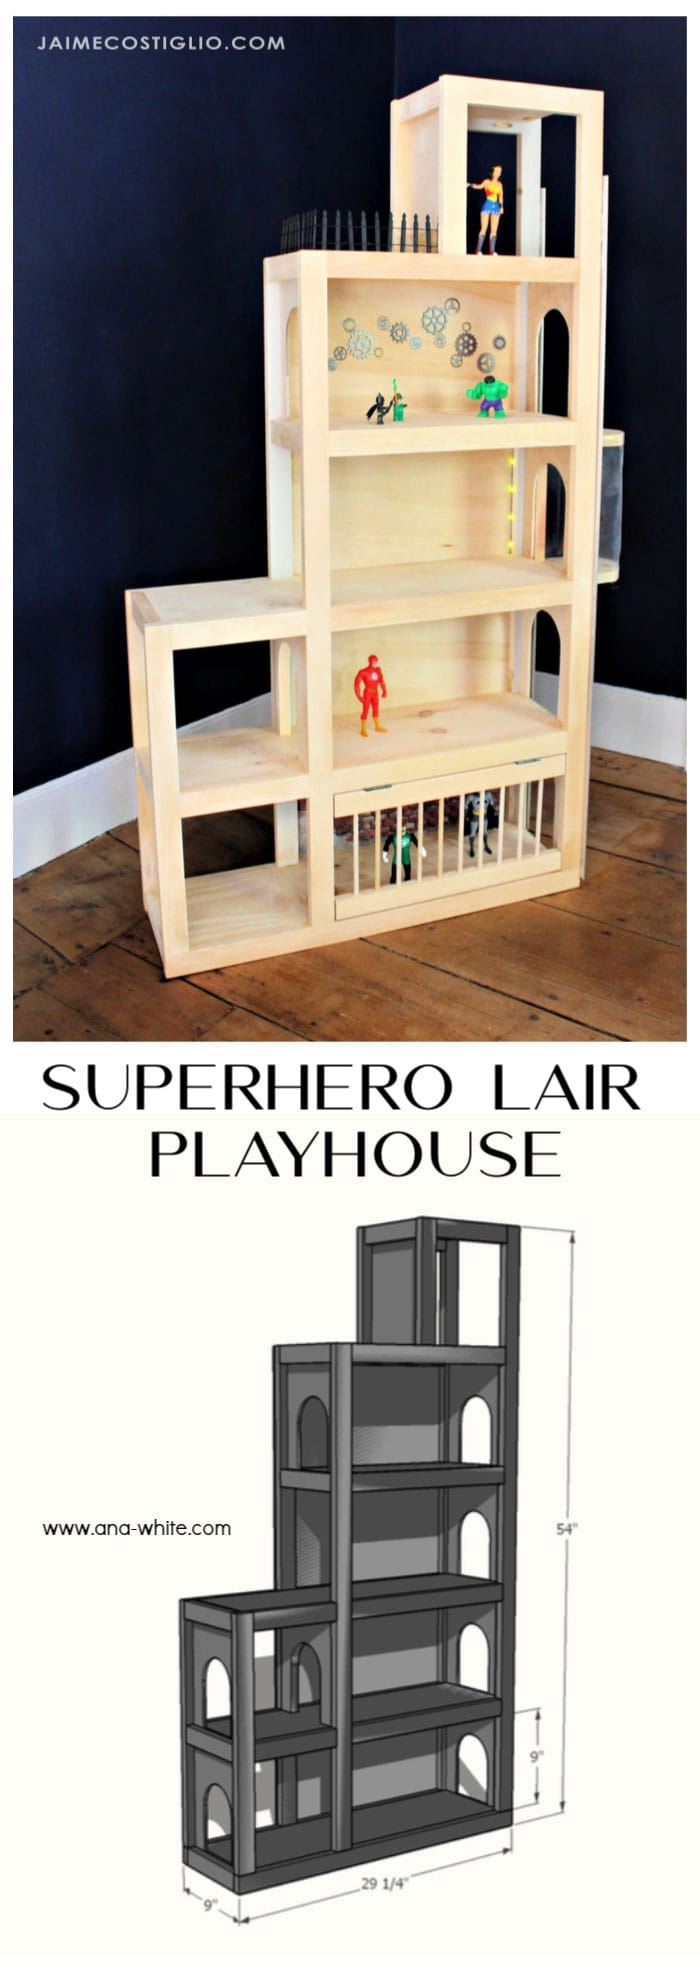 diy superhero lair playhouse free plans